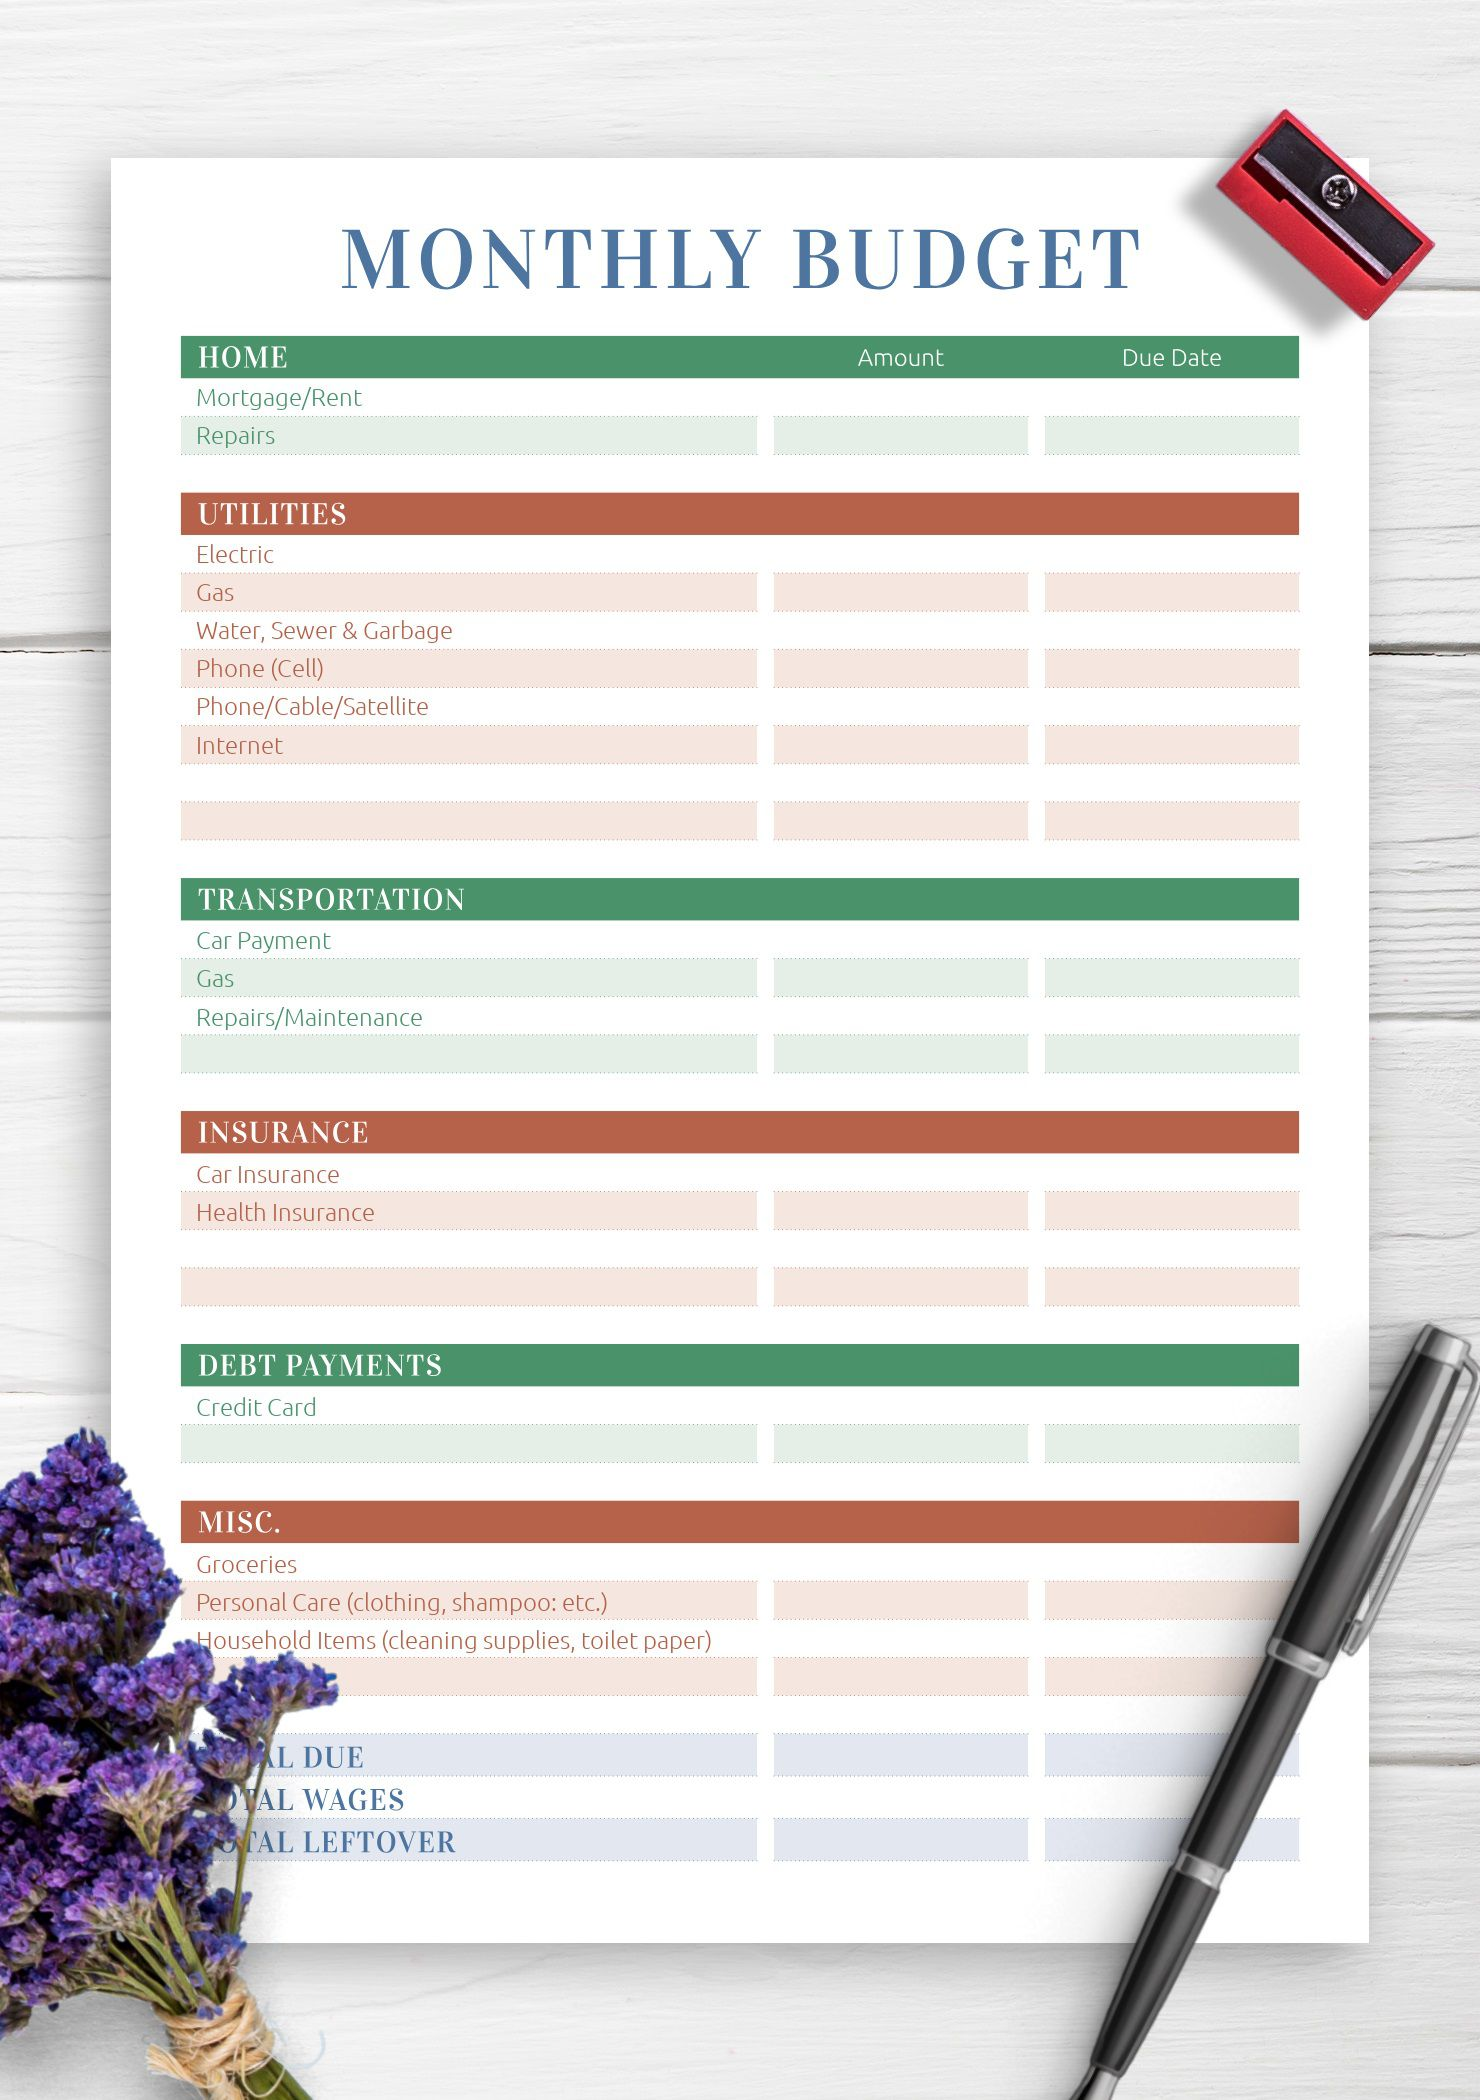 007 Phenomenal Free Printable Monthly Budget Form Highest Clarity  Forms Personal Template Blank SpreadsheetFull